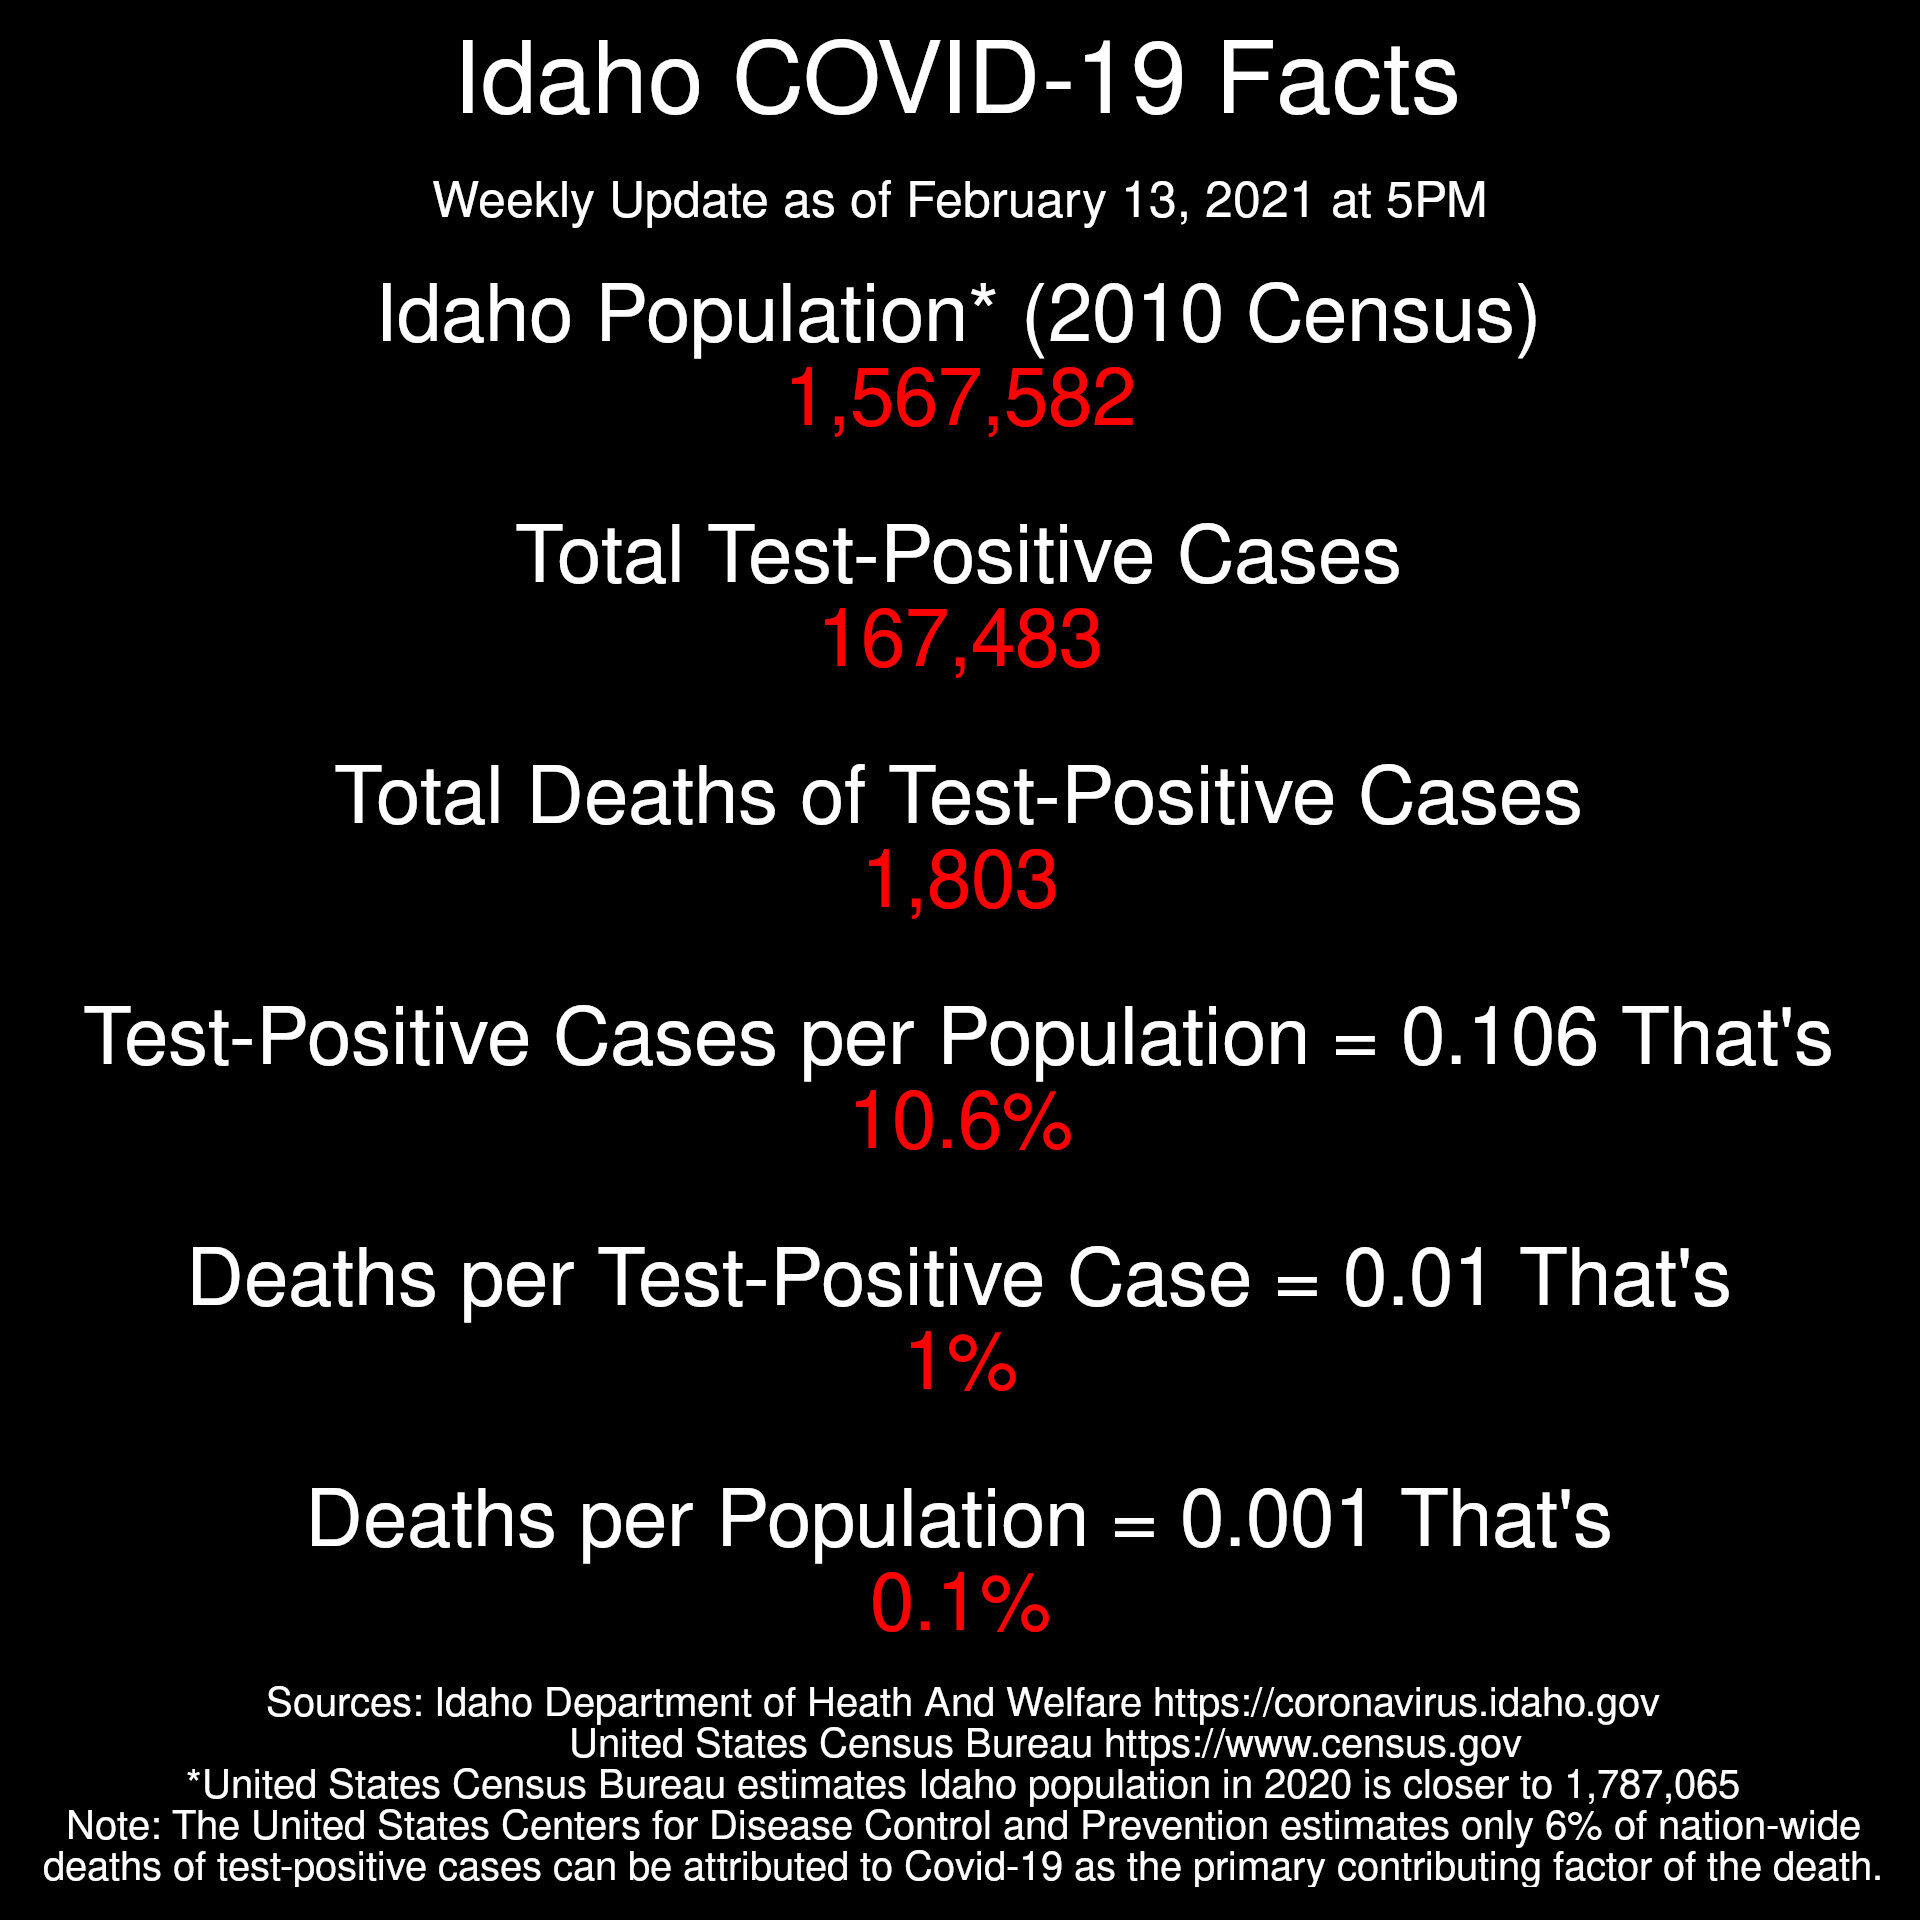 Idaho Coronavirus Facts  Weekly Update as of February 13, 2021 at 5PM  Population* (2010 Census): 1,567,582 Total Test-Positive Cases: 167,483 Total Deaths of Test-Positive Cases: 1,803  Test-Positive Cases per Population = 0.106 That's just 10.6%  Deaths per Test-Positive Case: 0.01 That's just 1%  Deaths per Population: 0.001 That's just 0.1%  Sources: Idaho Department of Heath And Welfare https://coronavirus.idaho.gov United States Census Bureau https://www.census.gov *United States Census Bureau estimates Idaho population in 2020 is closer to 1,787,065 Note: The United States Centers for Disease Control and Prevention estimates only 6% of nation-wide deaths of test-positive cases can be attributed to Covid-19 as the primary contributing factor of the death.